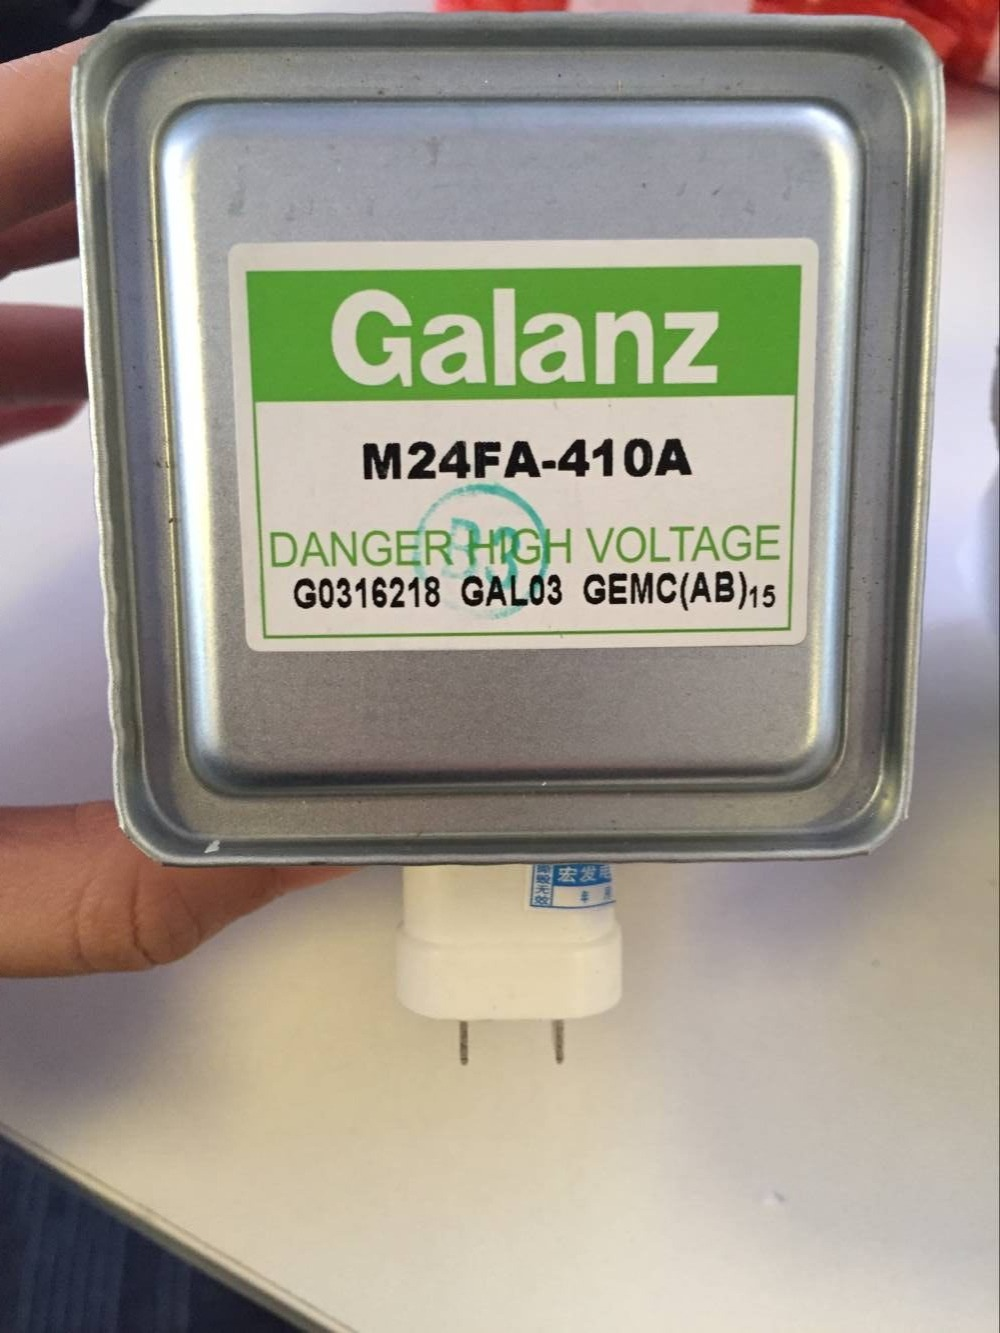 1pc Microwave Oven Magnetron M24FA-410A For Galanz original new m24fa 410a for galanz magnetron microwave oven parts microwave oven magnetron microwave oven spare parts